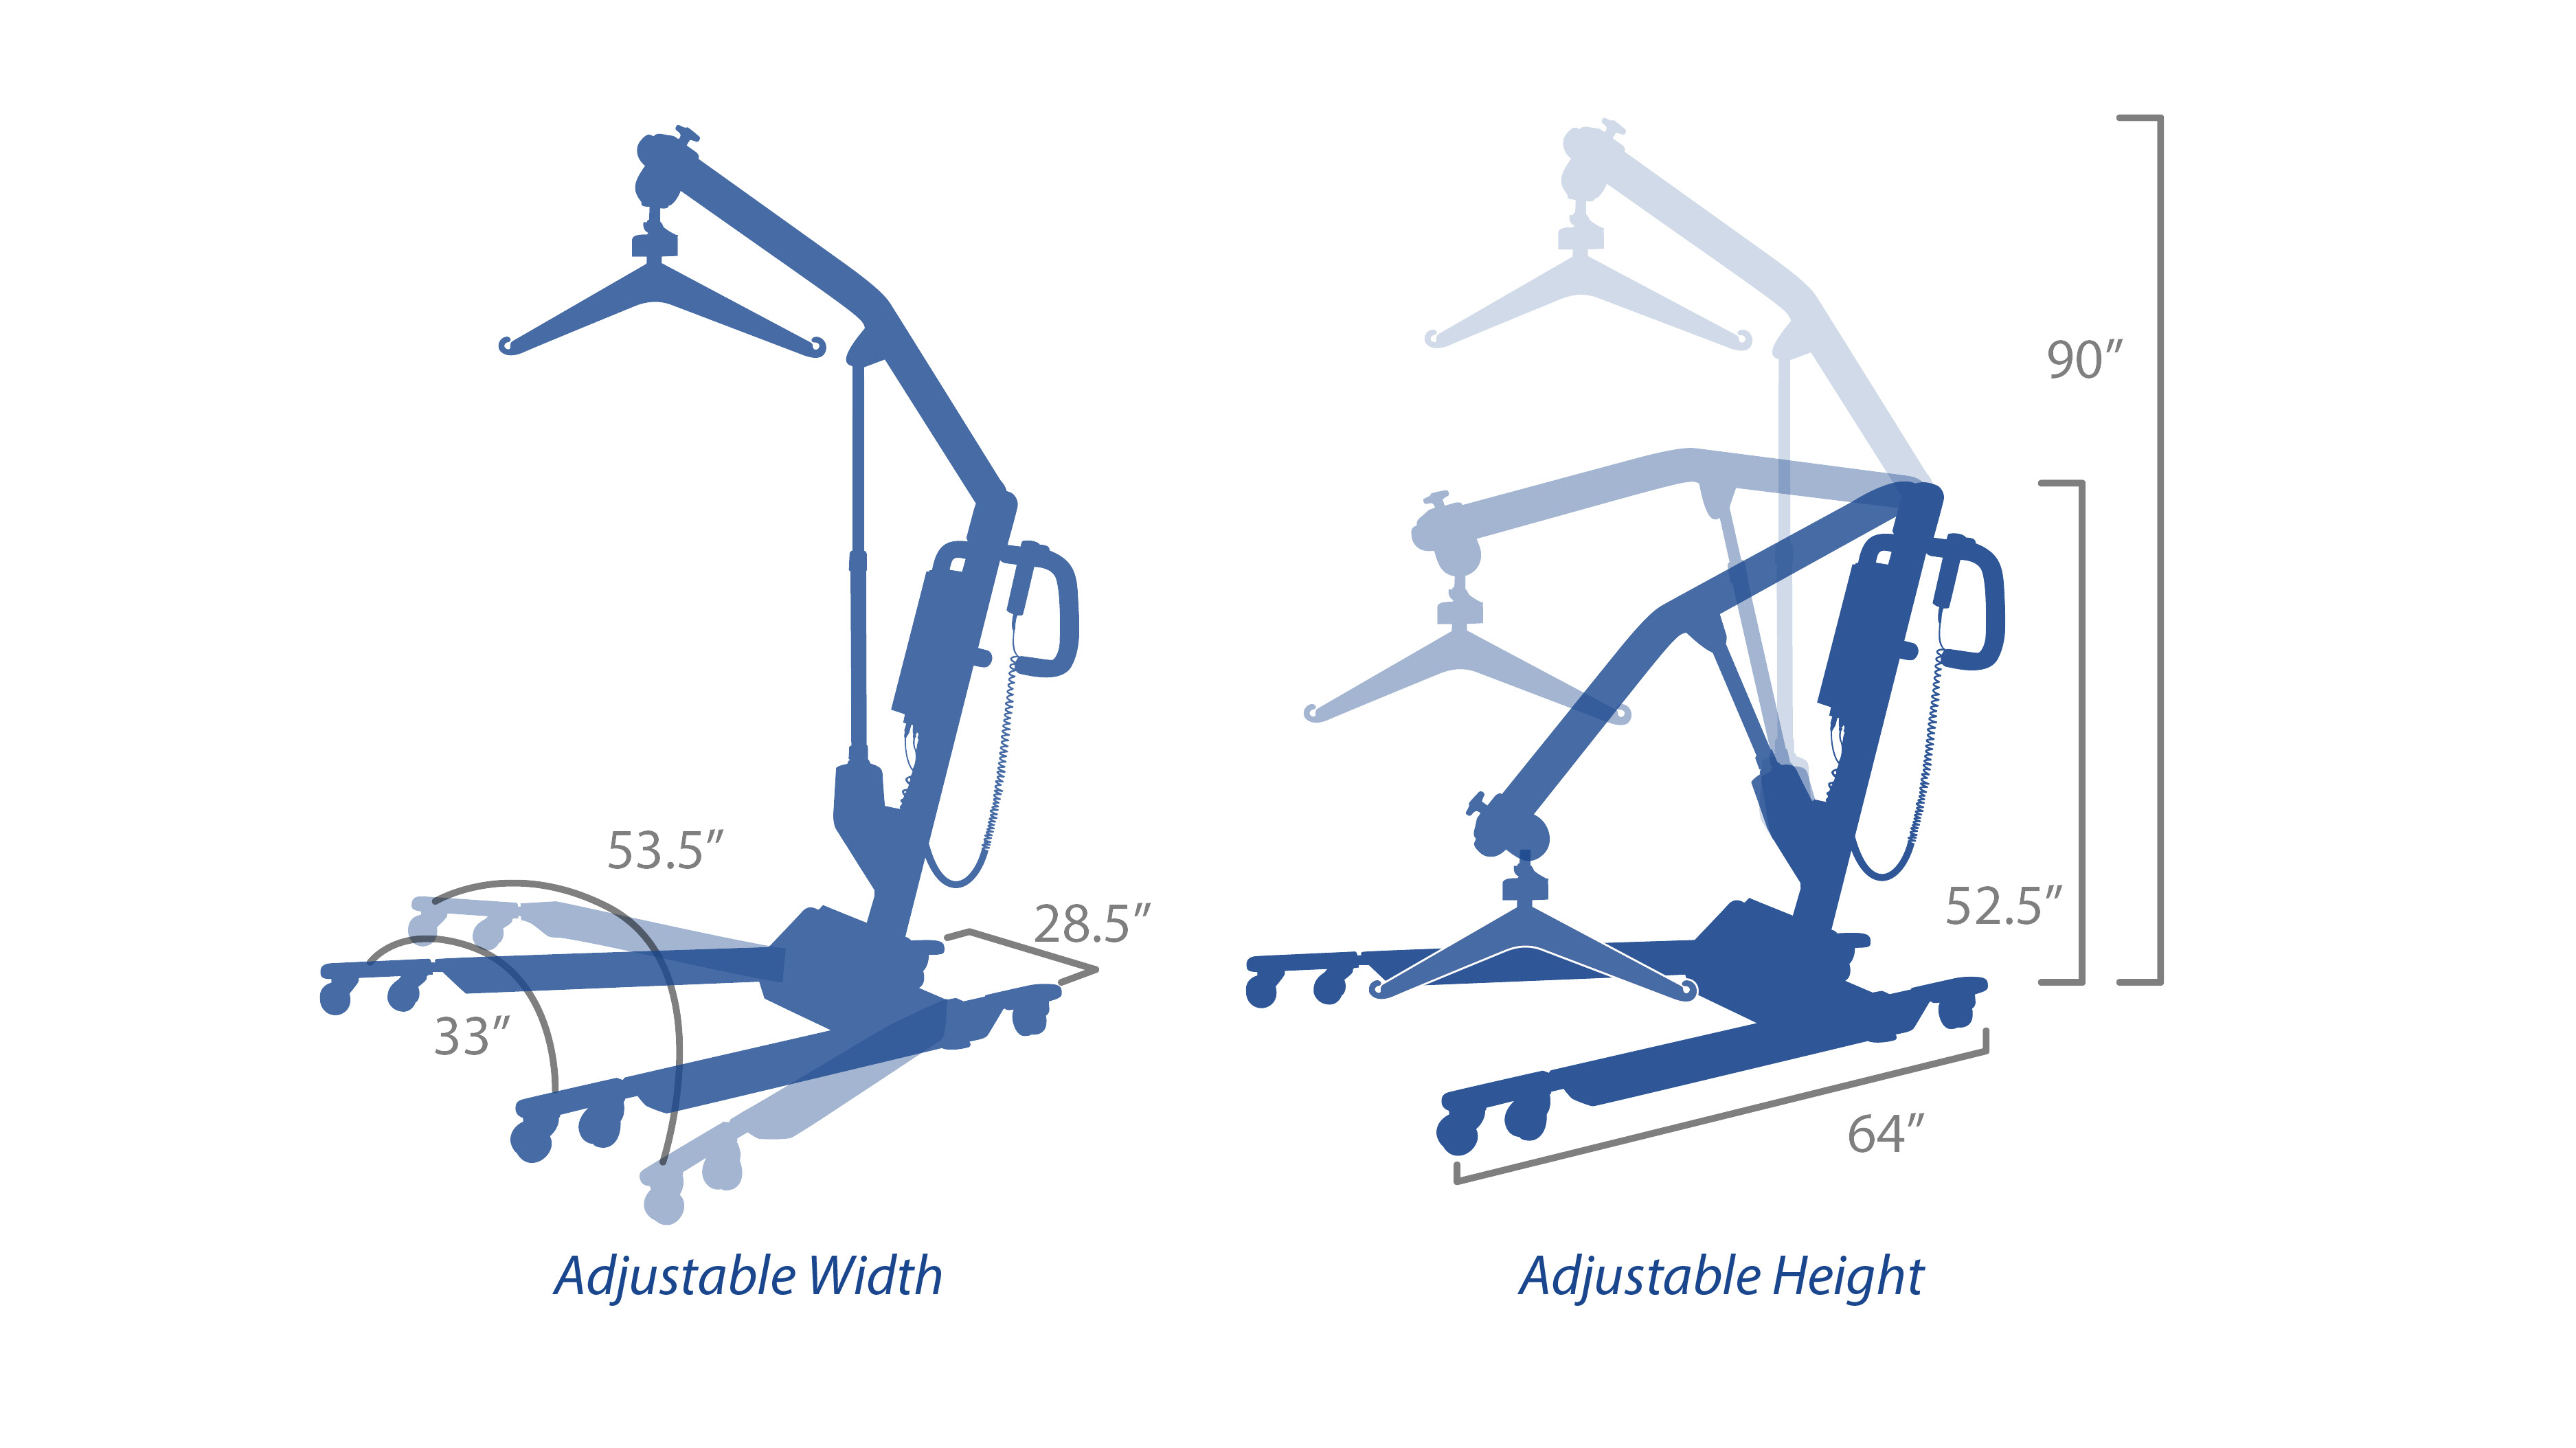 "Adjustable-width wheelbase provides enhanced stability; lift extends up to 90"" tall"